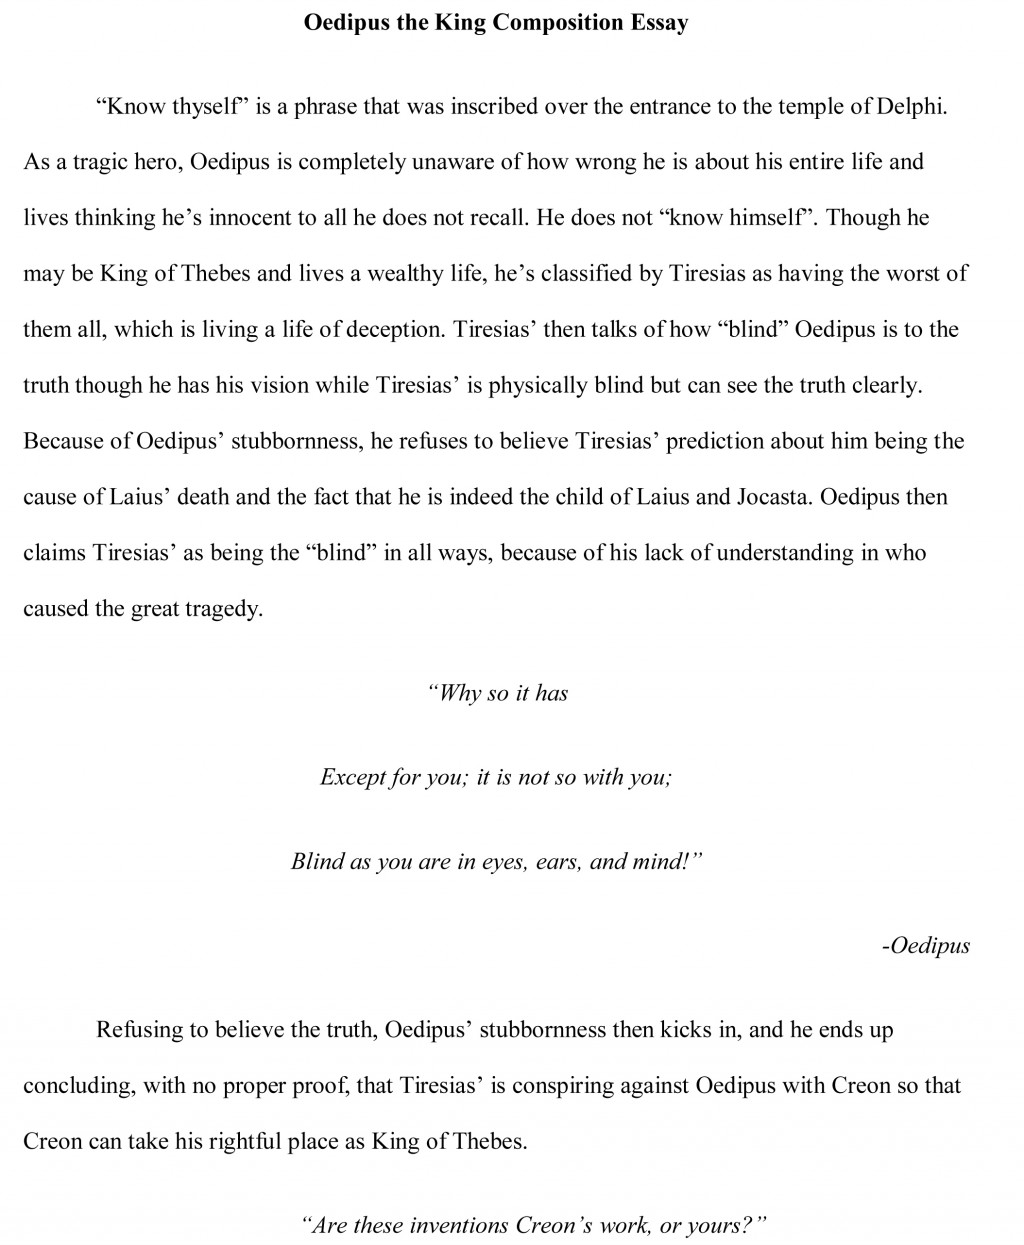 012 Interesting Essay Topics Oedipus Free Sample Amazing Descriptive To Write About For Grade 8 In Urdu Synthesis Large